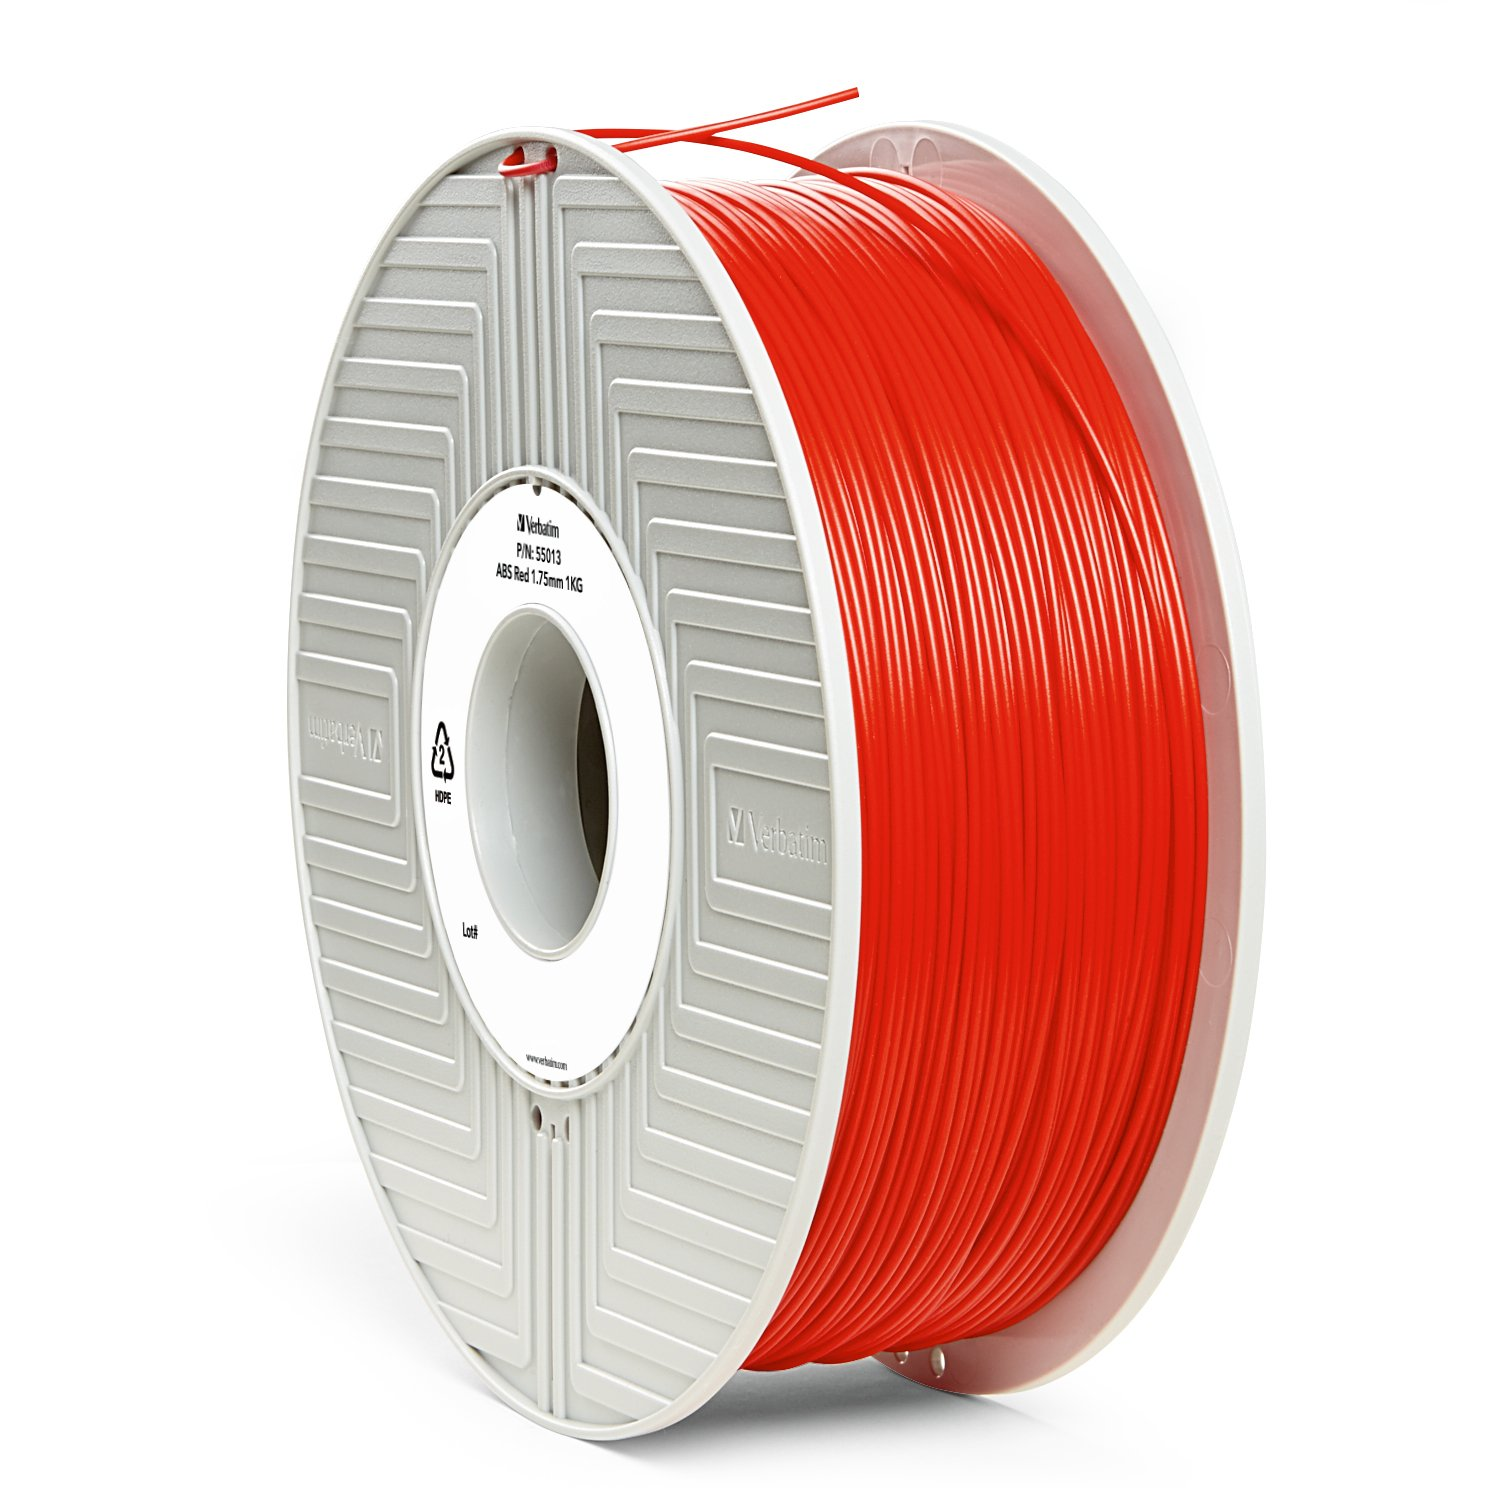 Verbatim 1.75 mm ABS Filament for Printer - White